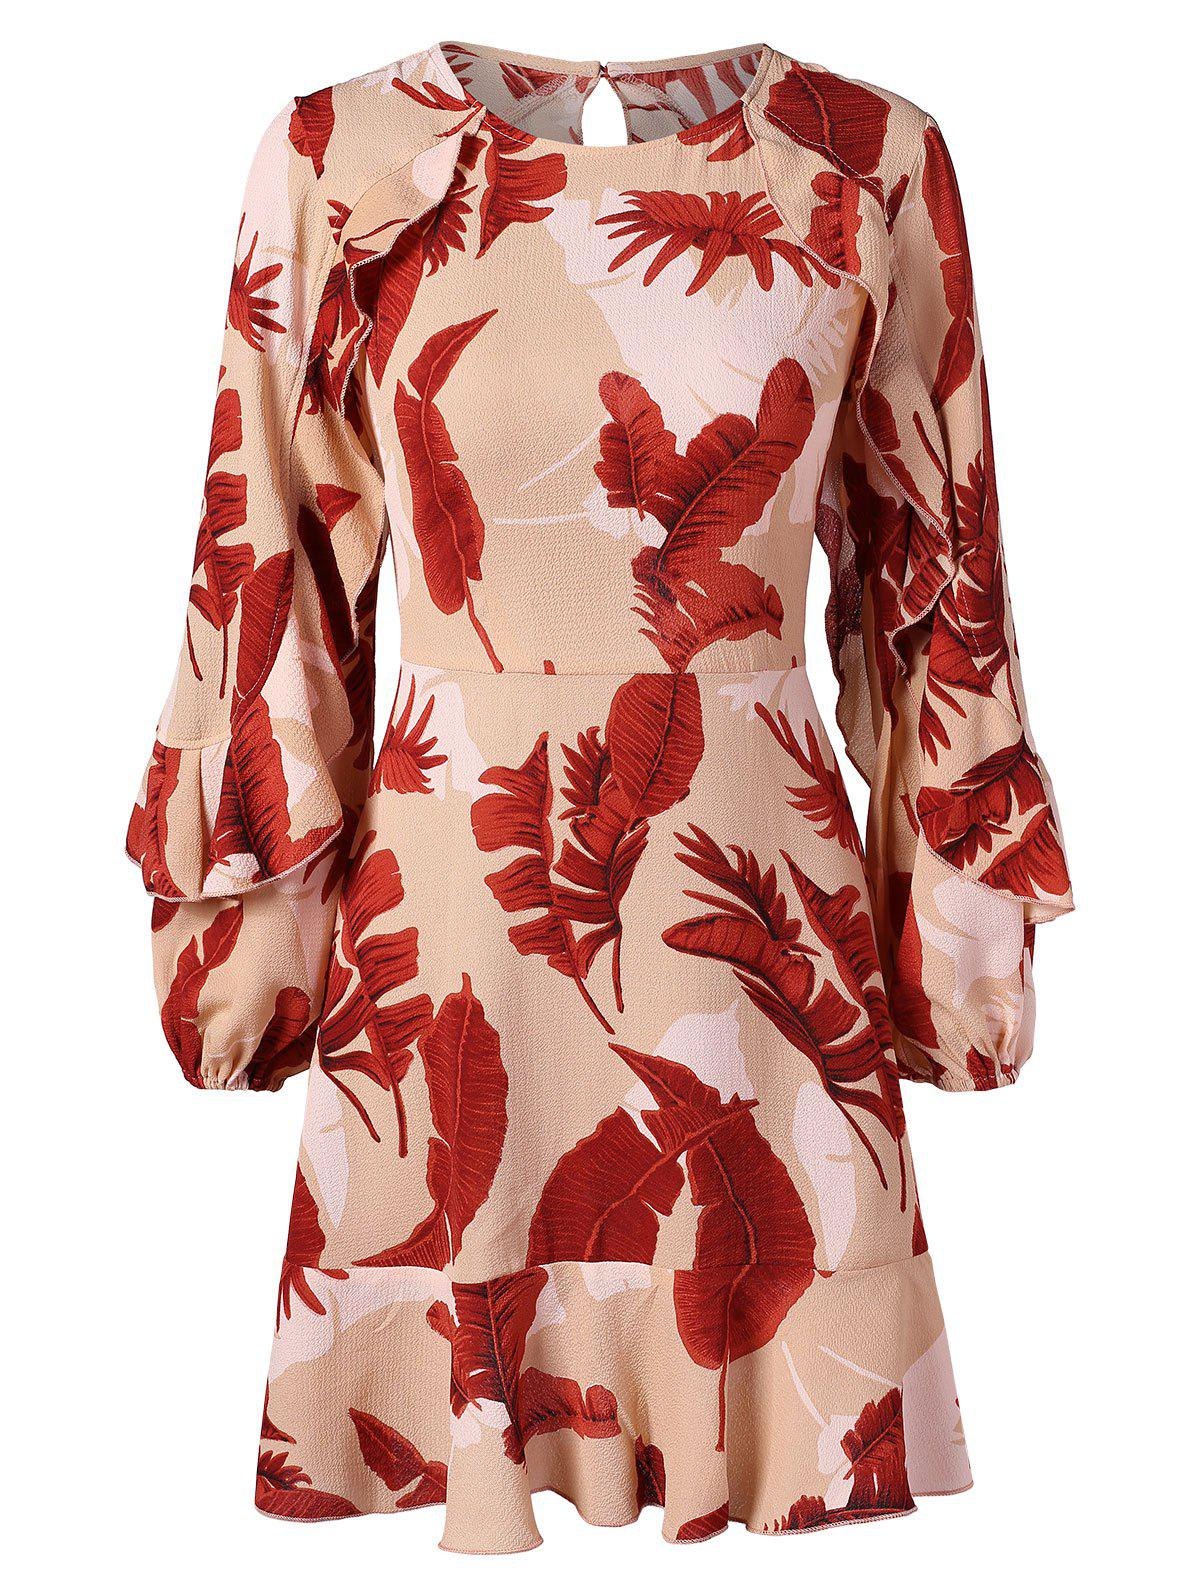 Leaf Print Cut Out Flounce Dress - multicolor M